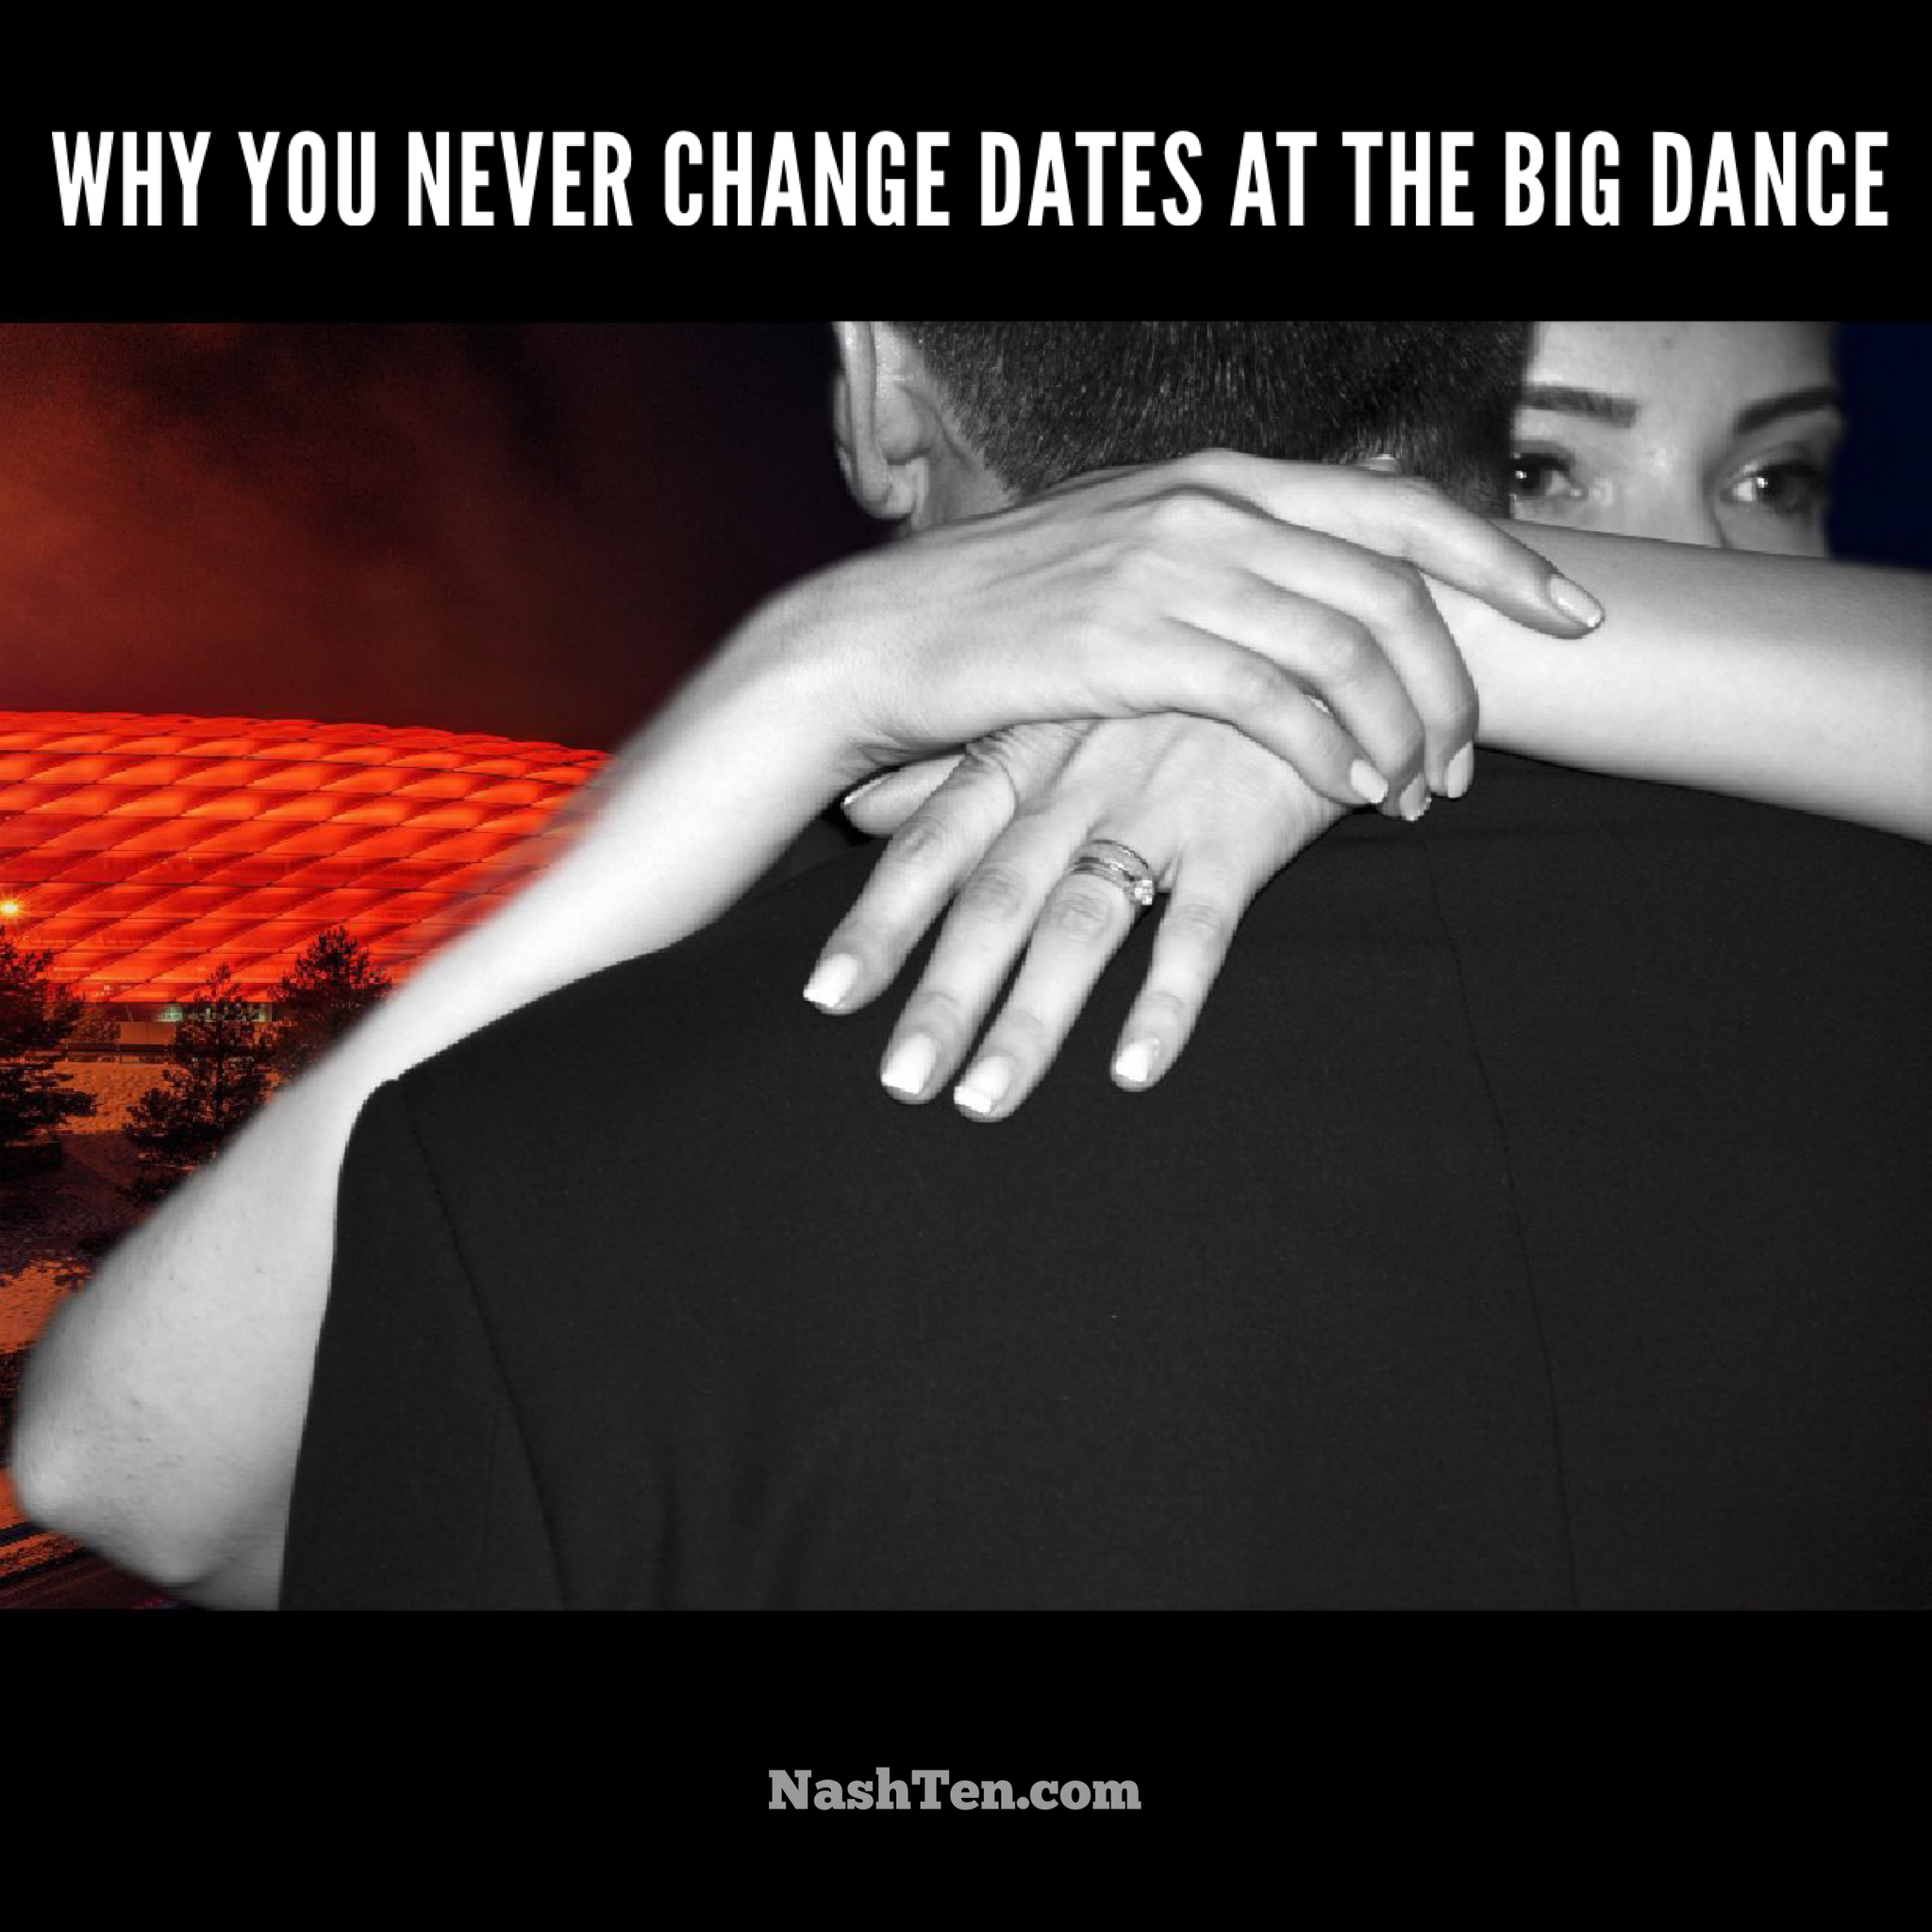 Why you should never change dates at the big dance